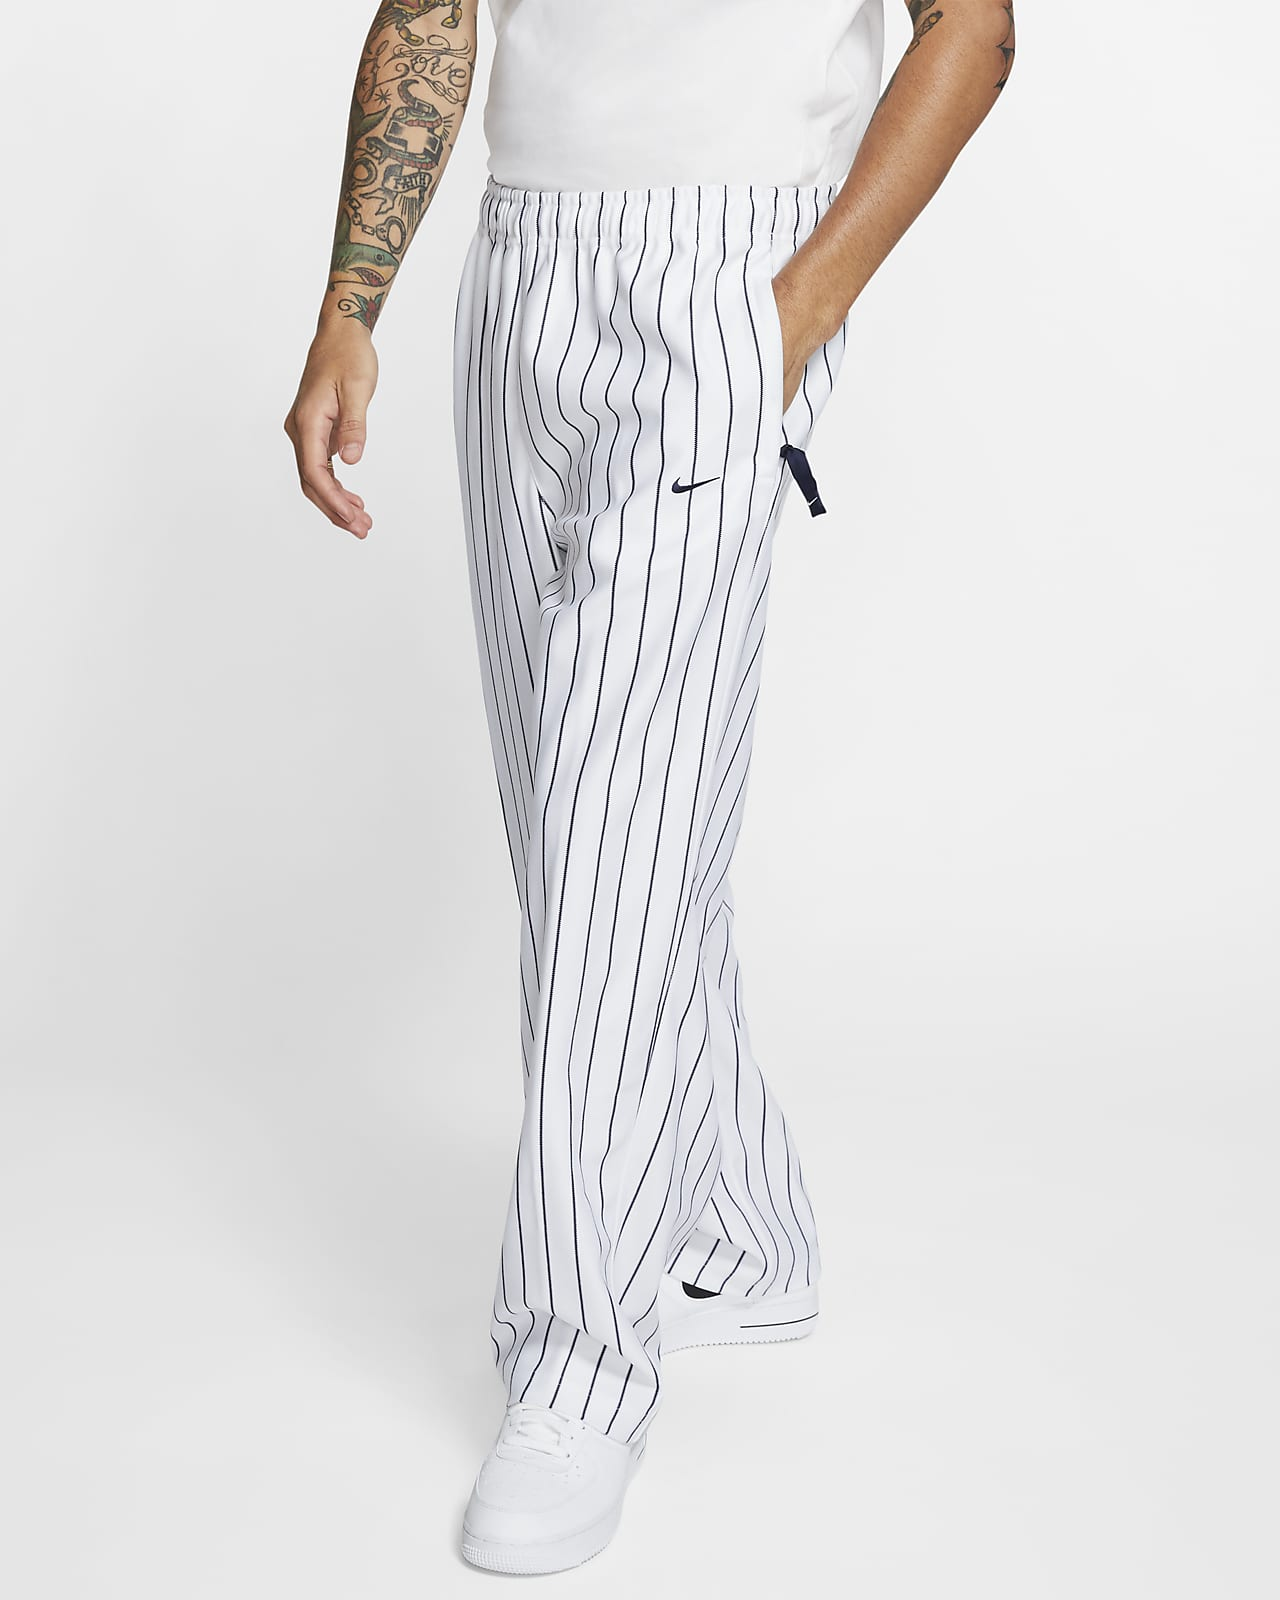 Nike Men's Swoosh Striped Trousers